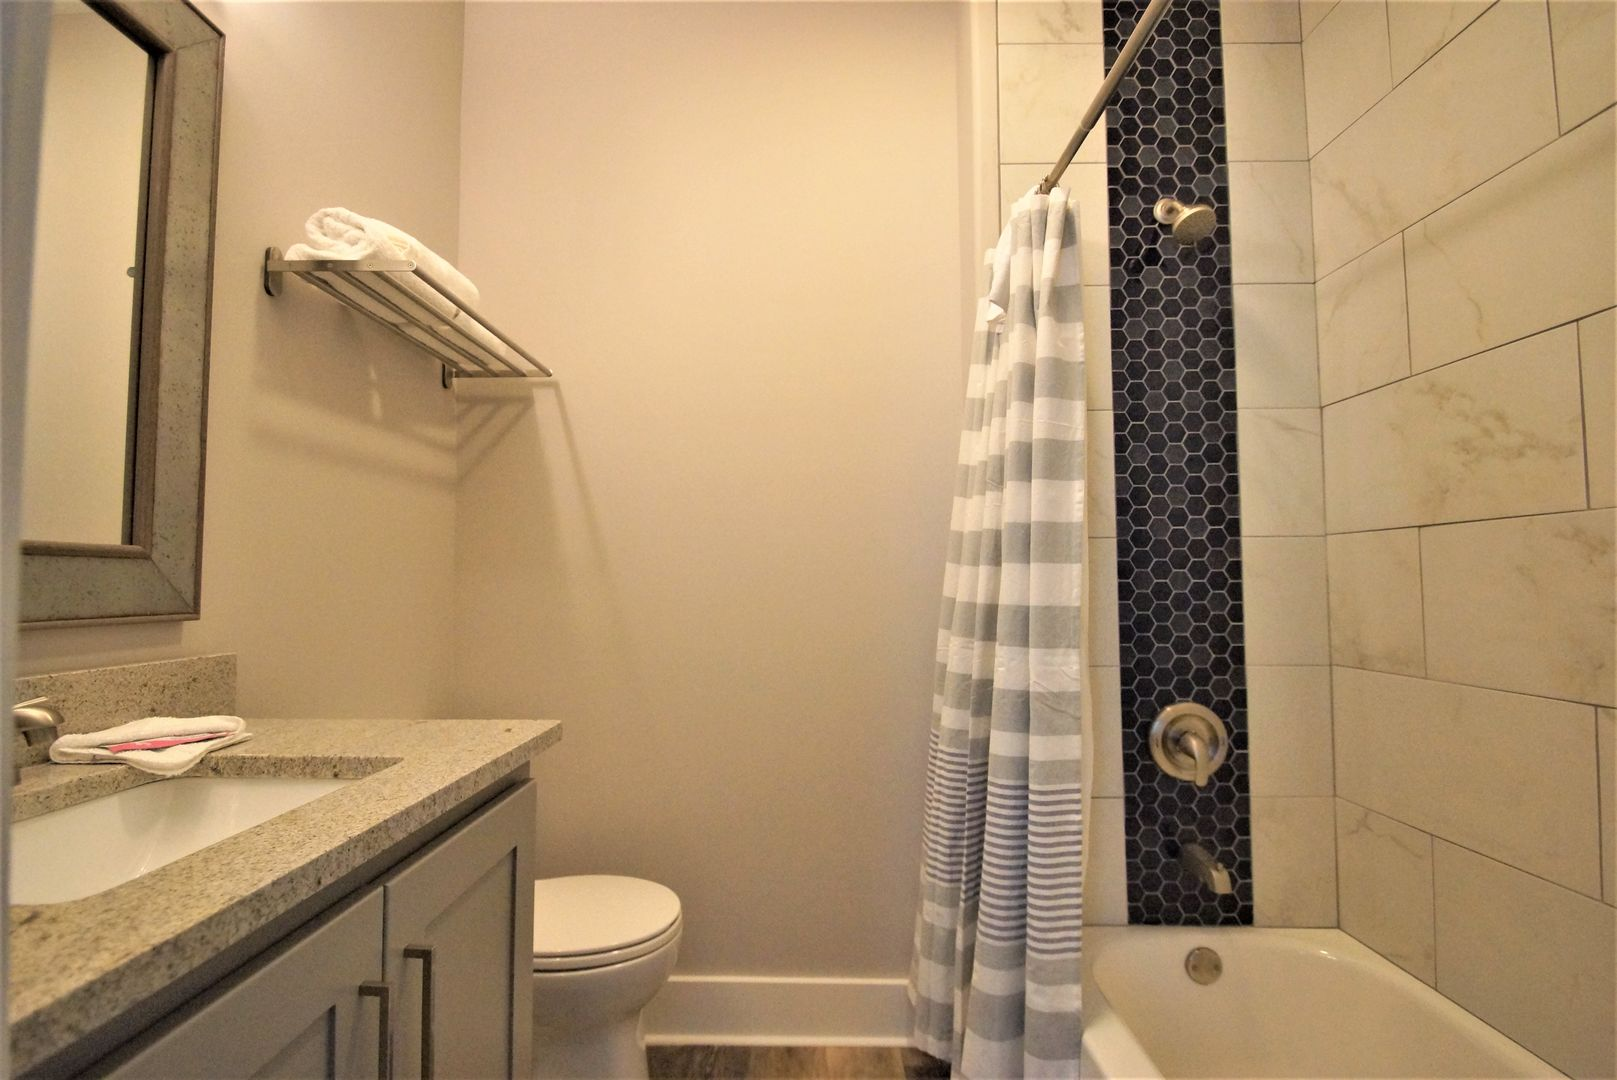 Bathroom attached to bedroom #3.